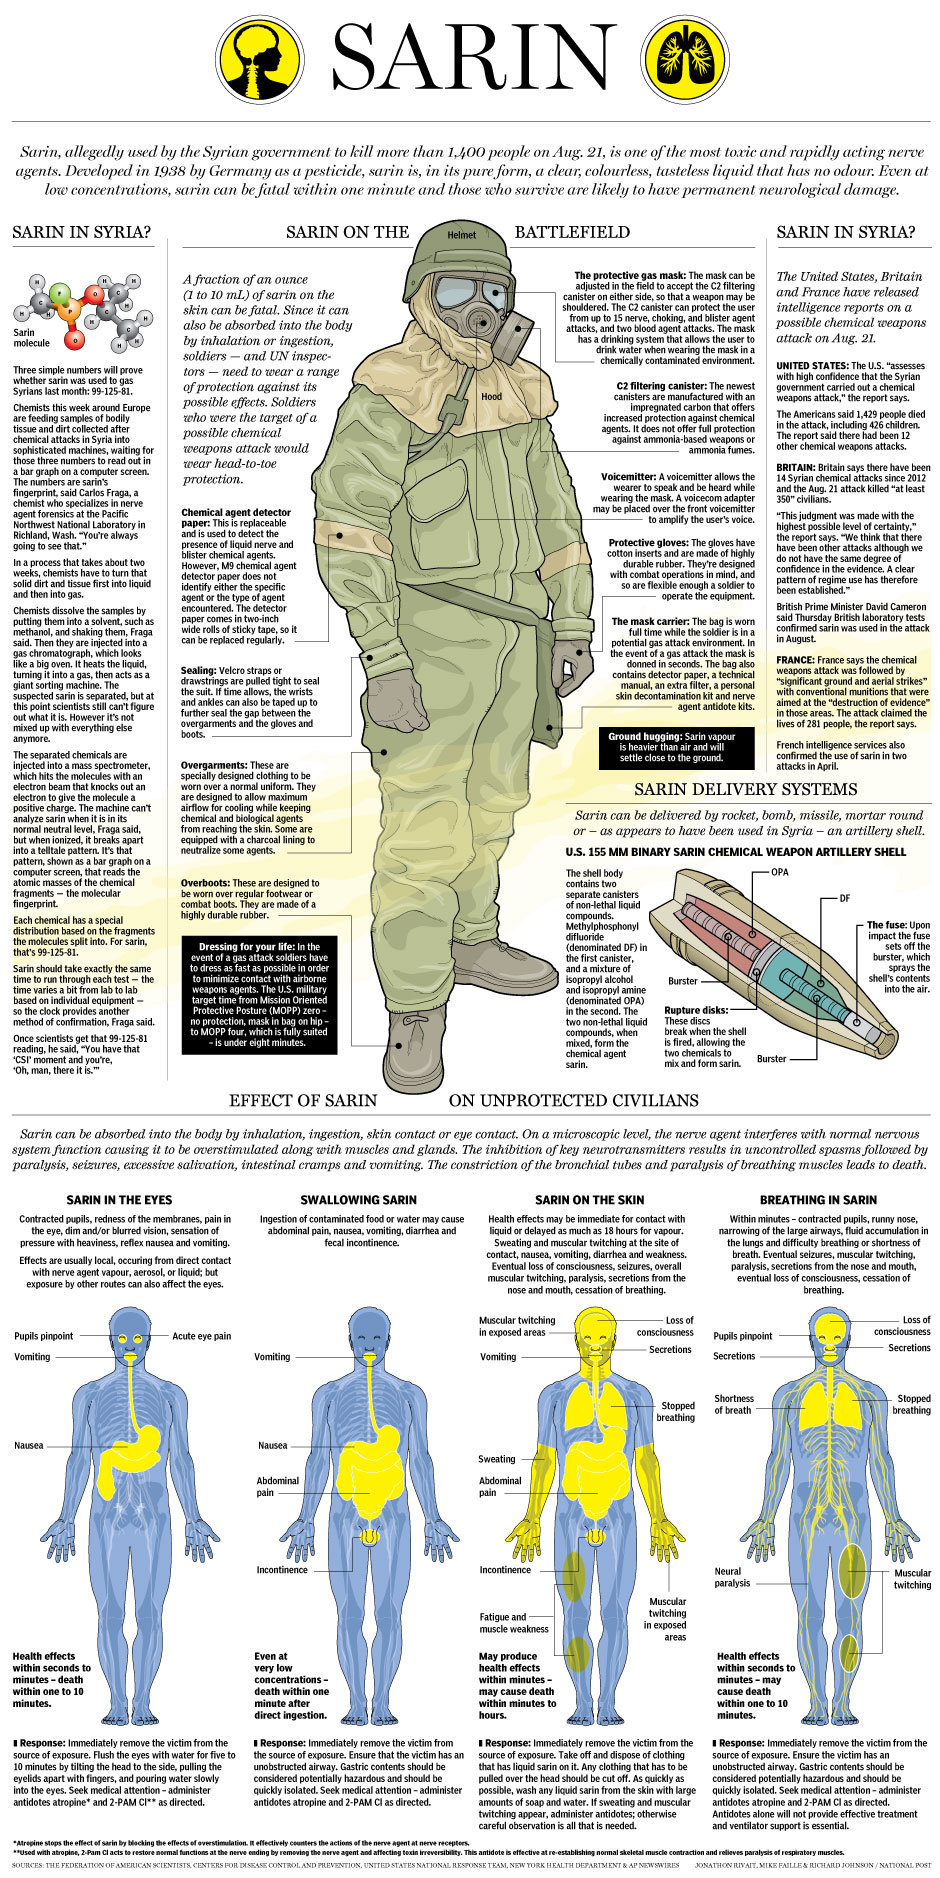 an overview of the health effects and nerve agents The effects of nerve agents are long lasting and increase with continued exposure survivors of nerve agent poisoning almost invariably suffer chronic neurological damage and related psychiatric effects [5].